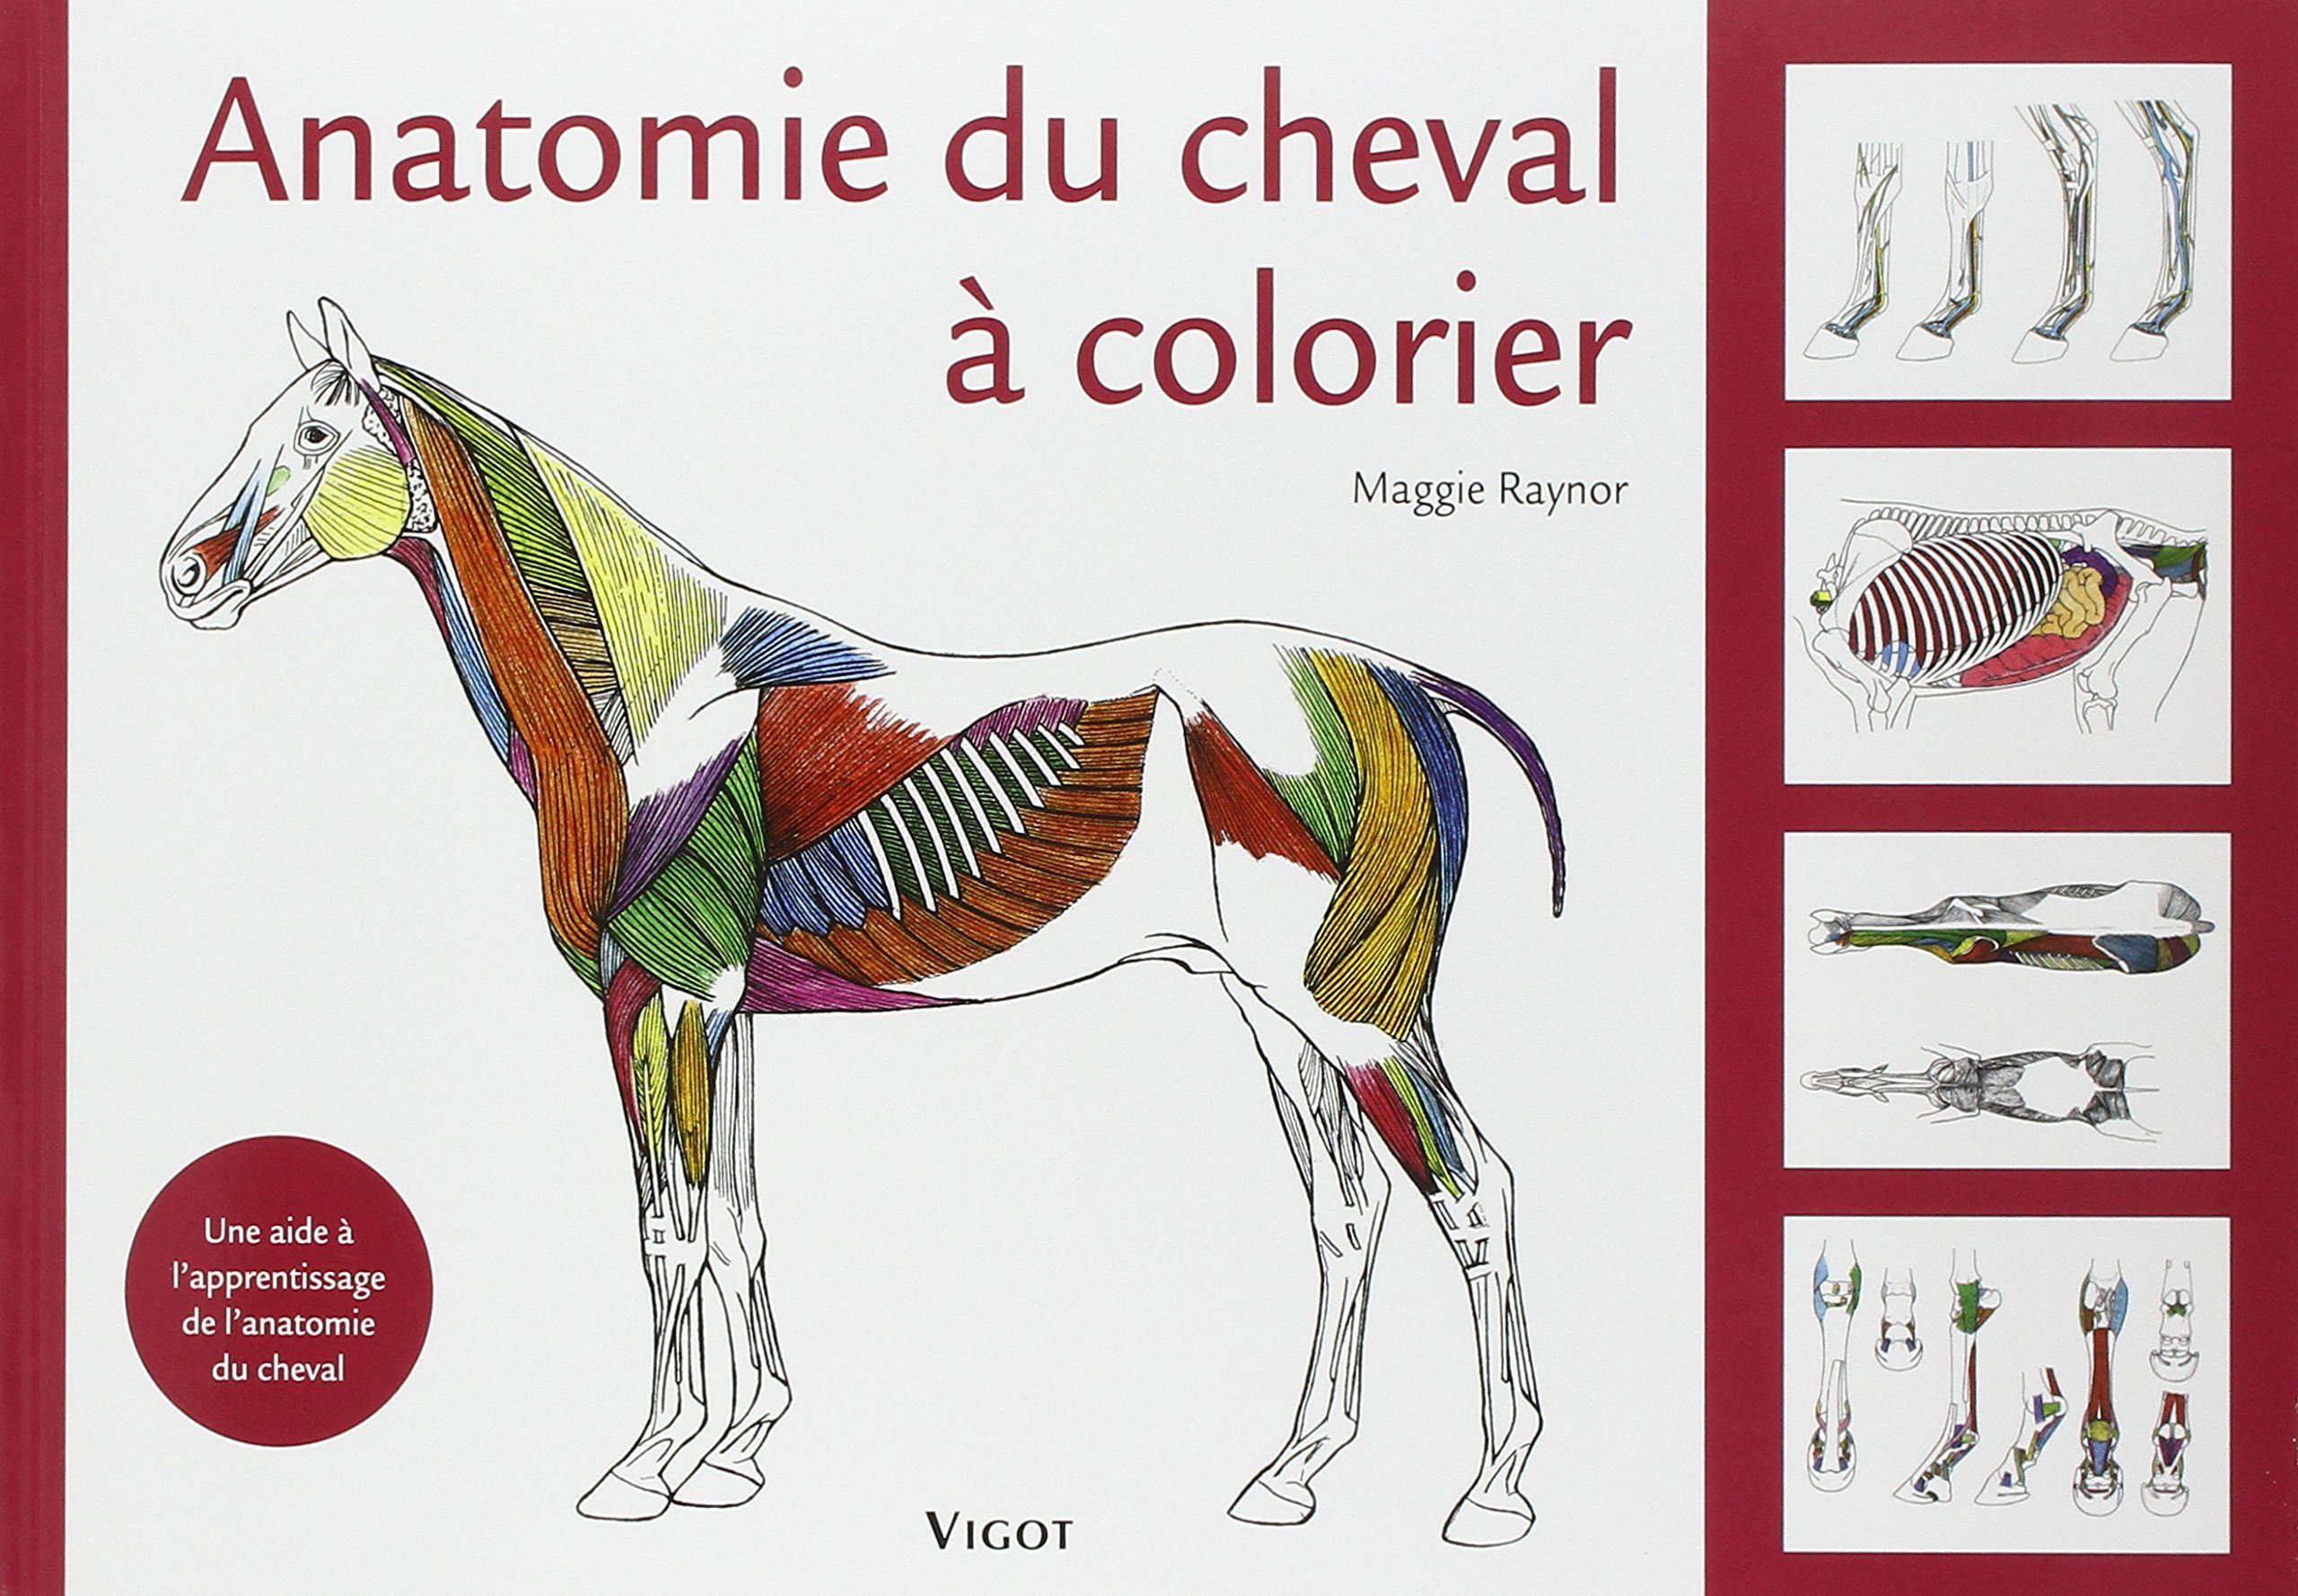 Anatomie du cheval à colorier: Amazon.ca: Maggie Raynor: Books